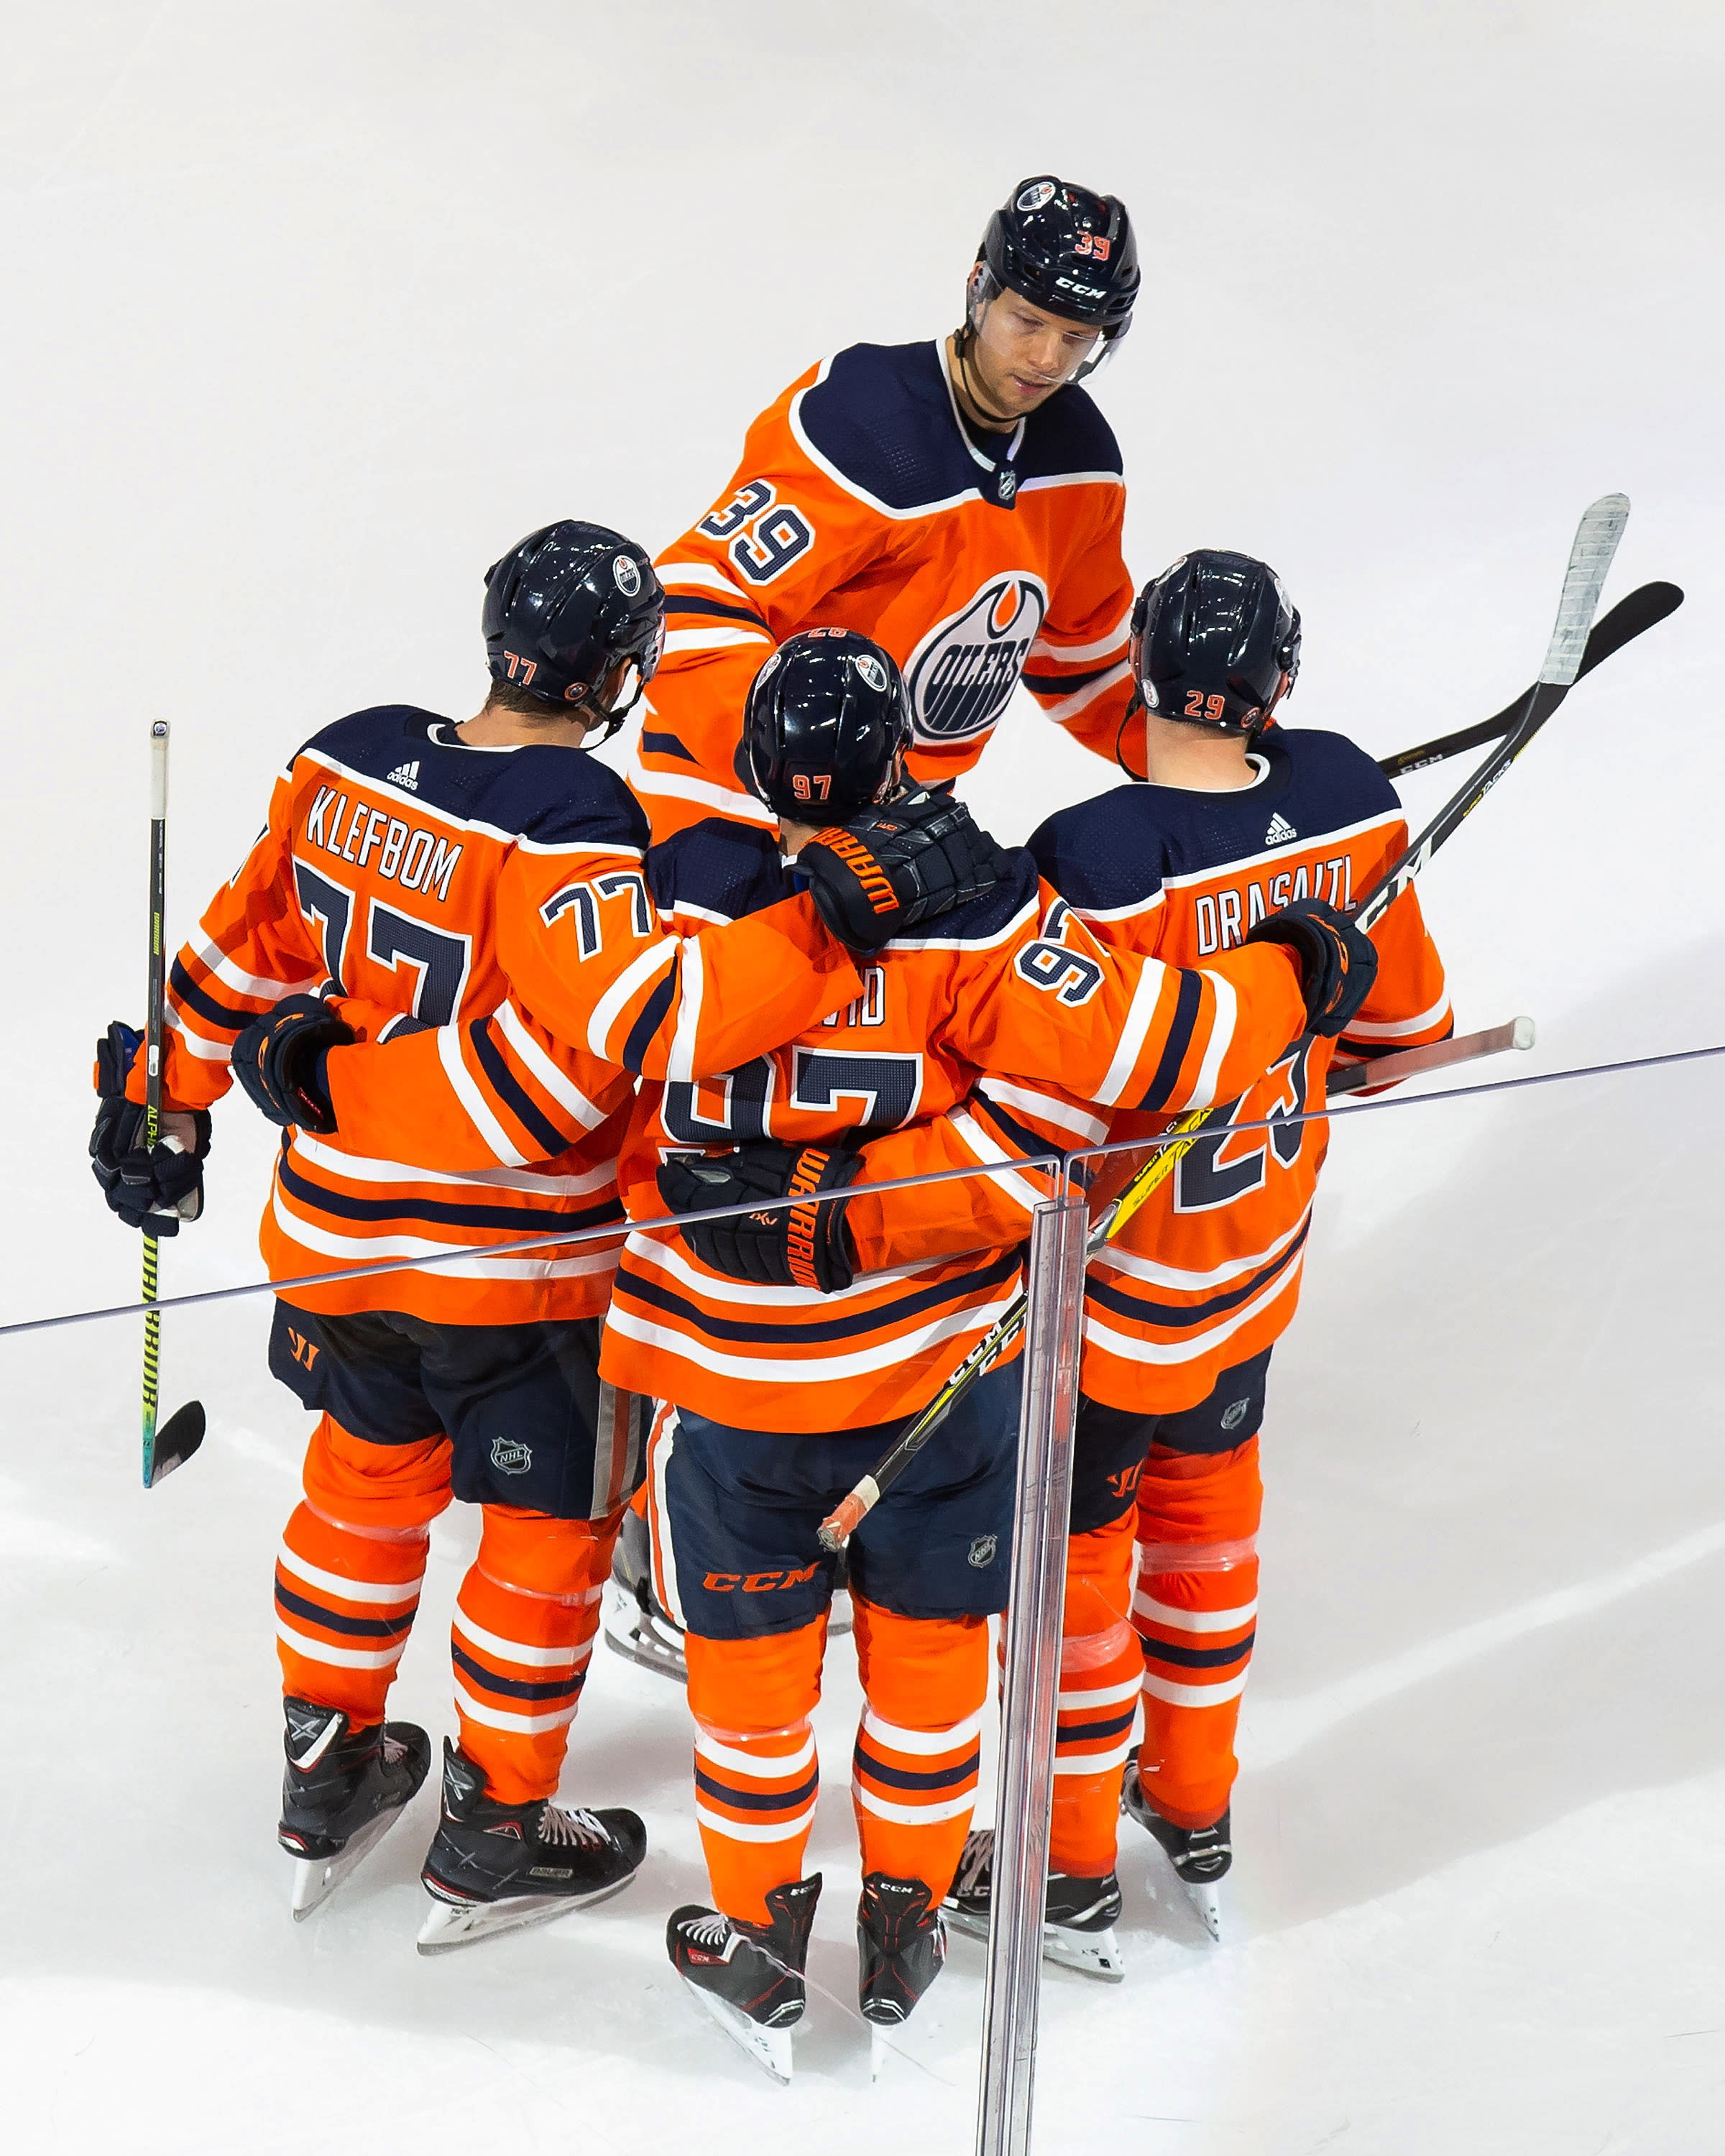 Edmonton Oilers' Oscar Klefbom (77), Alex Chiasson (39), Connor McDavid (97) and Leon Draisaitl (29) celebrate a goal against the Chicago Blackhawks during the second period of an NHL hockey playoff game Monday, Aug. 3, 2020, in Edmonton, Alberta. (Codie McLachlan/The Canadian Press via AP)